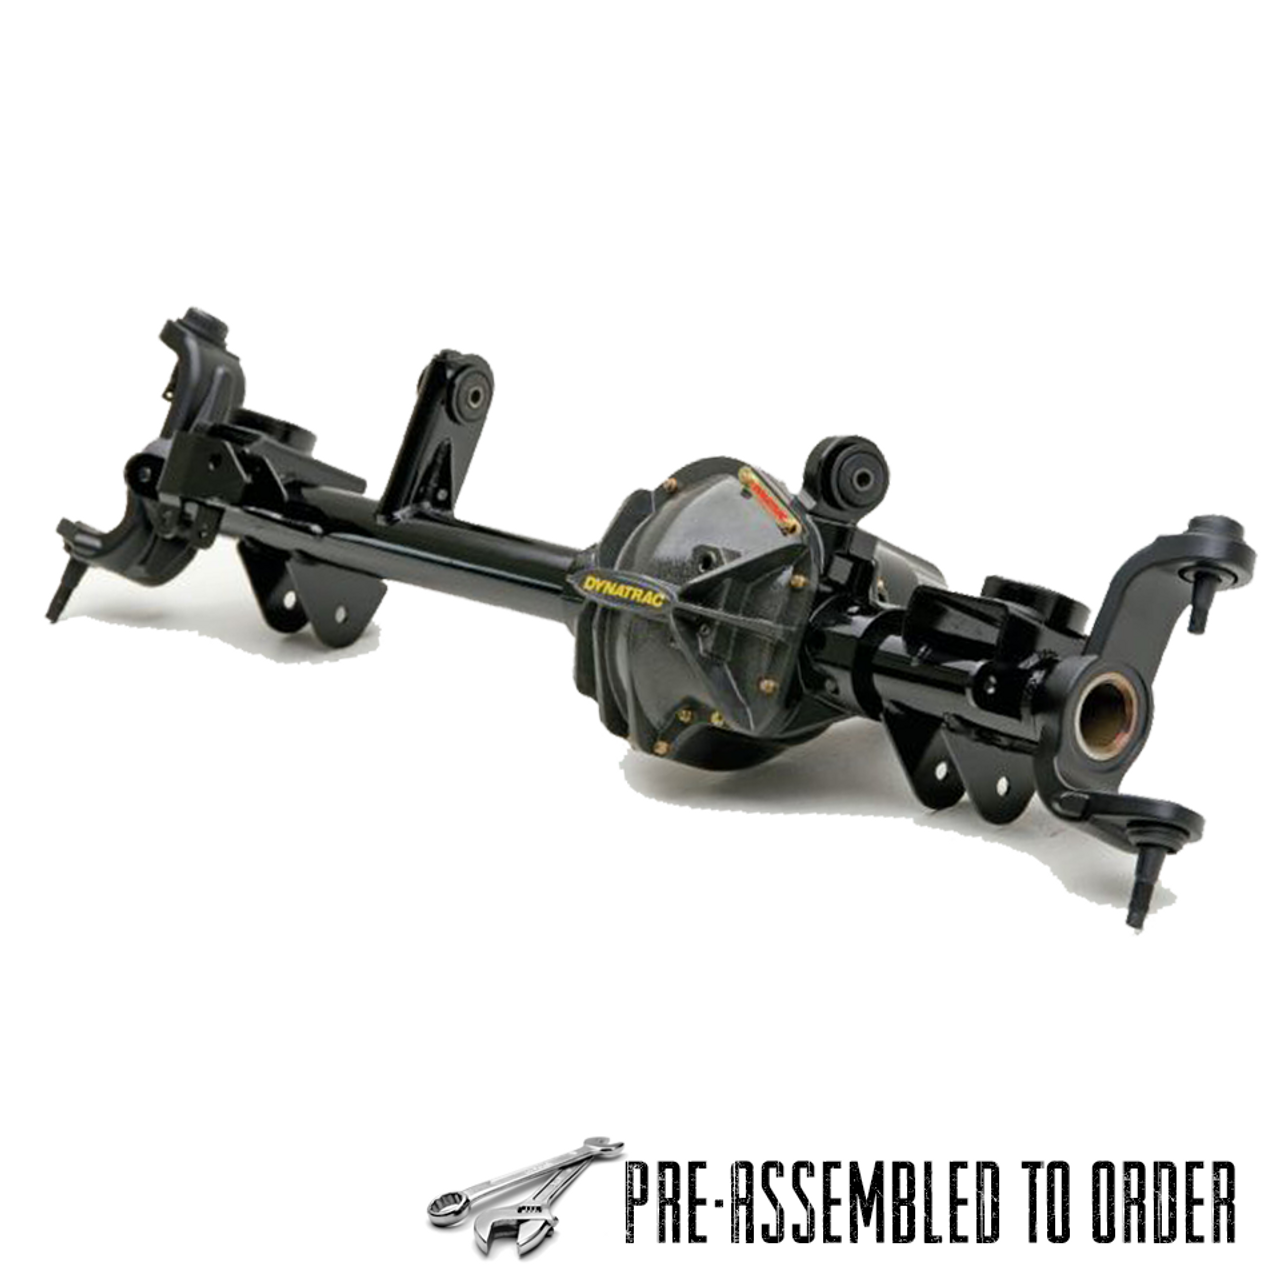 Dynatrac JK44-1X3010-X-ASSEM Prorock 44 Axle Assembly for Jeep Wrangler JK 2007-2018